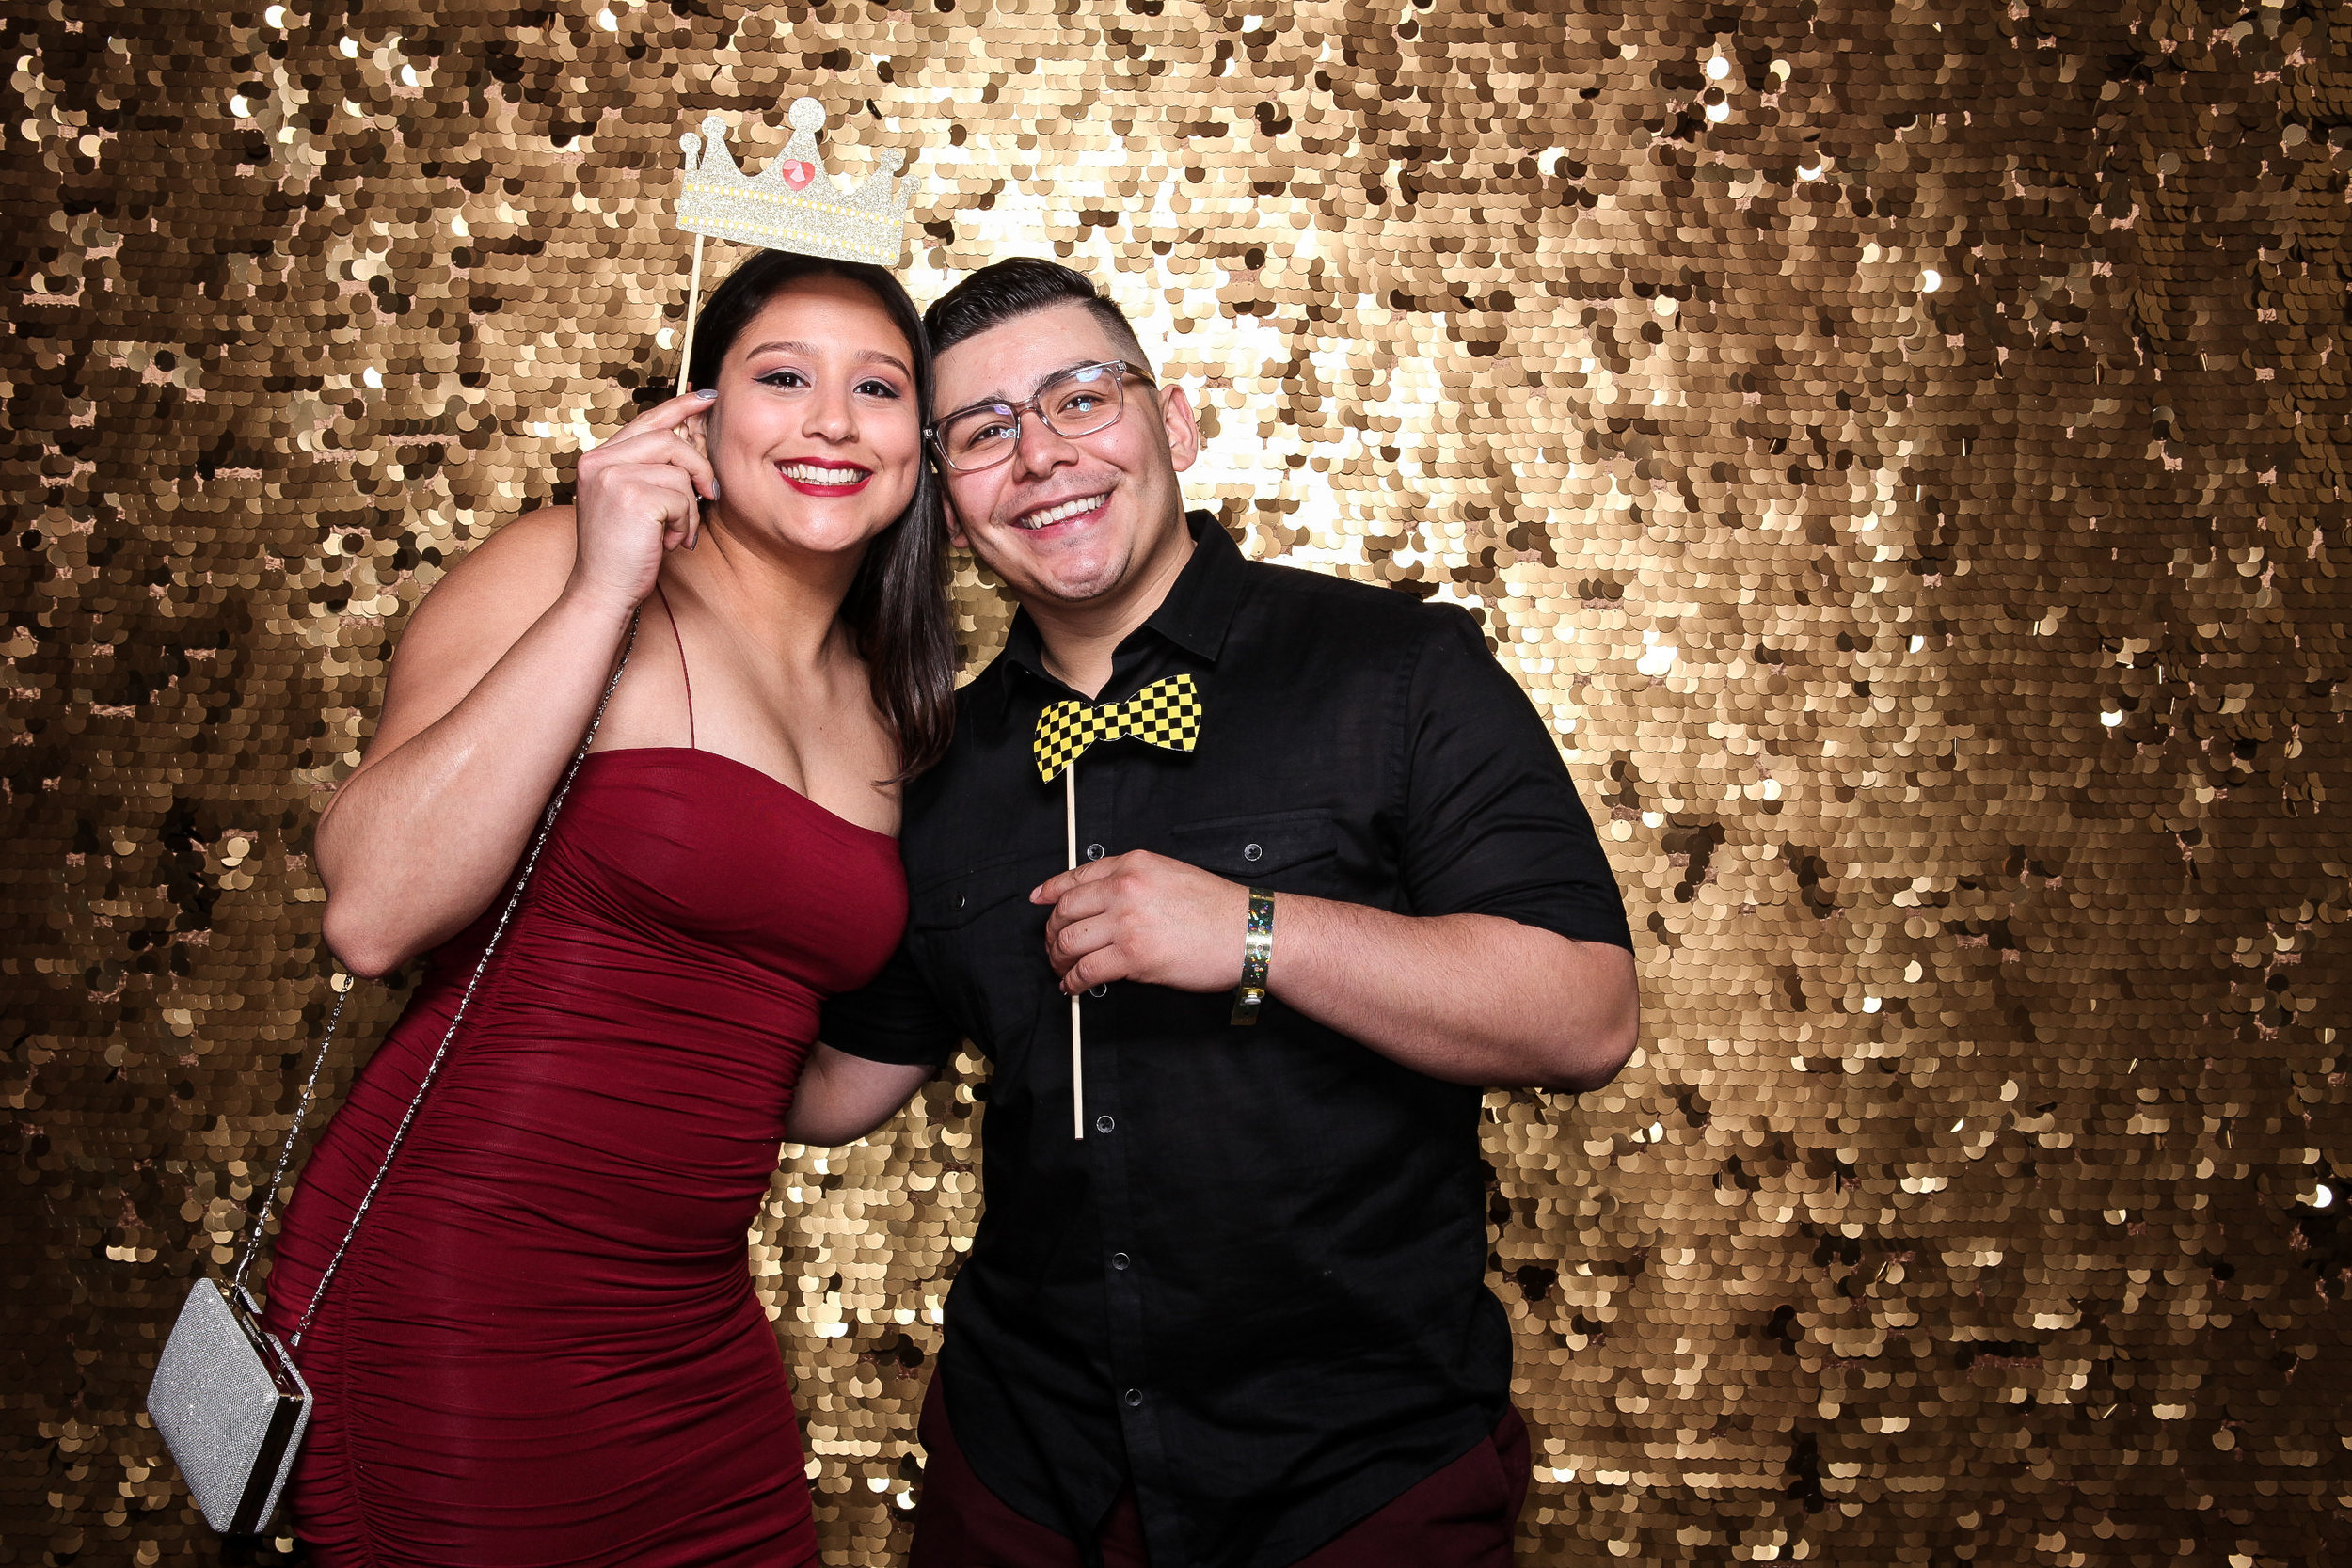 20190503_Adelphi_Senior_Formal-096.jpg